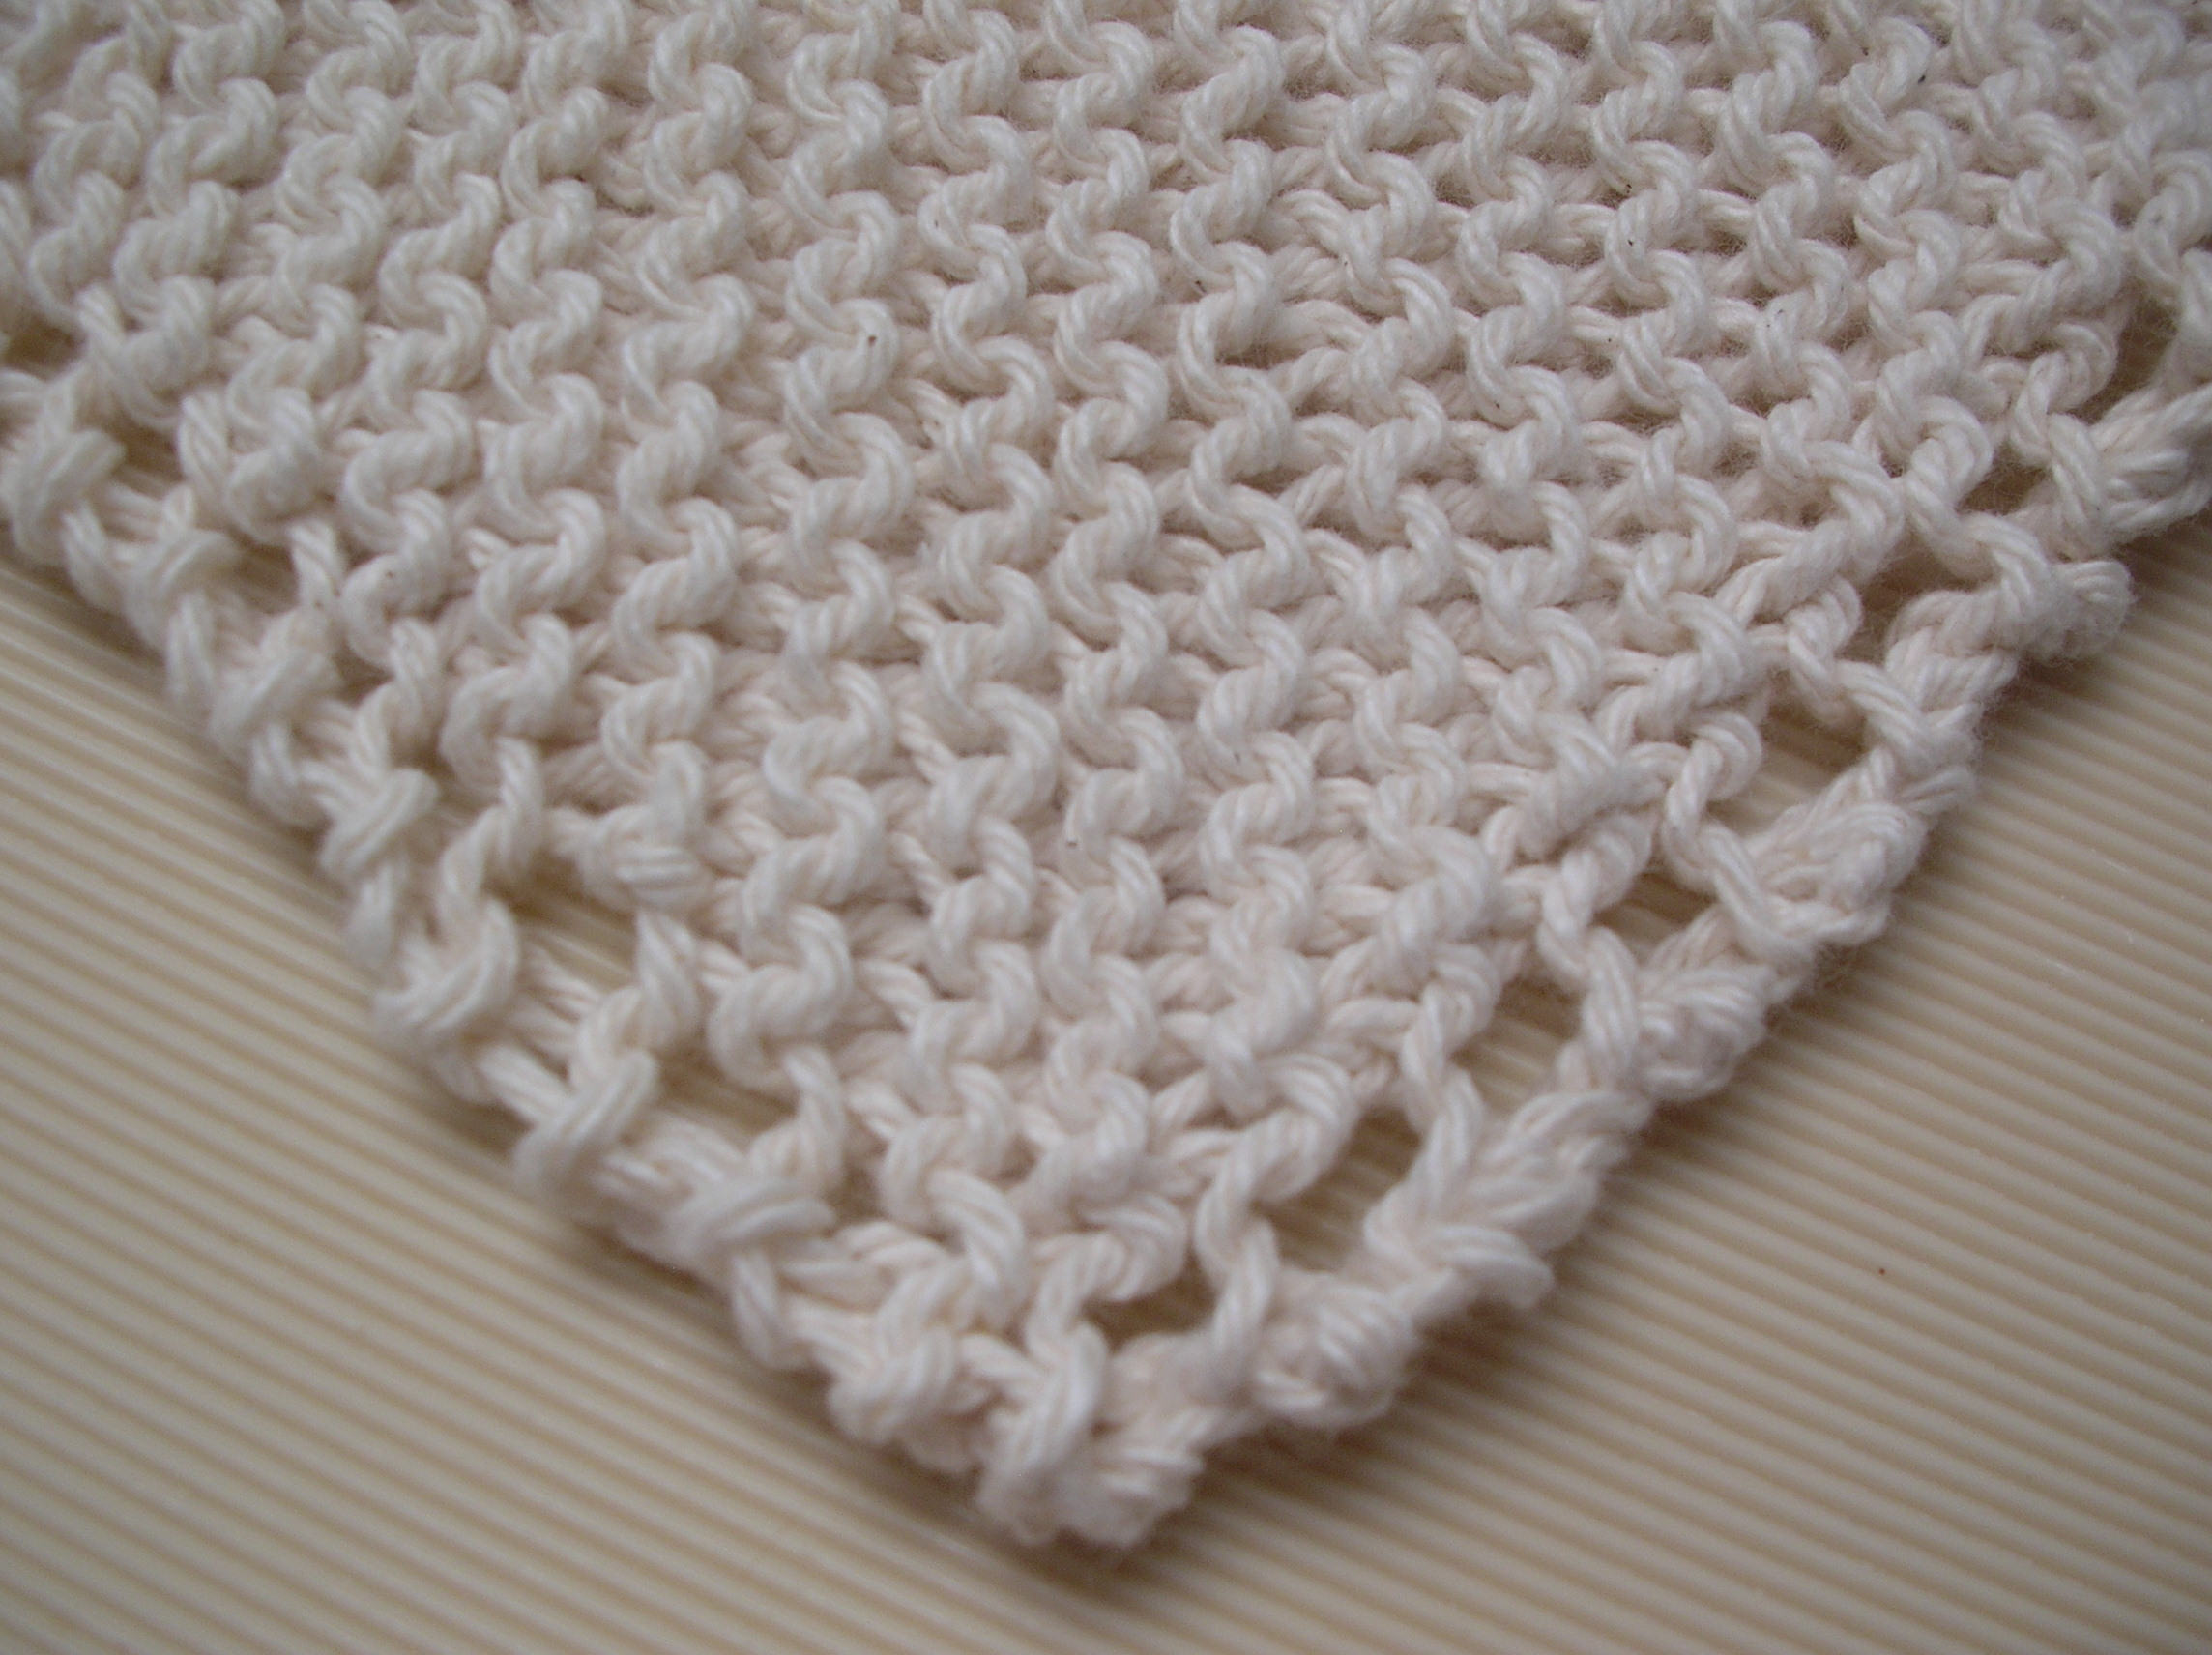 Crochet Patterns Cotton Yarn : 34 New Crochet Dishcloth Patterns For Free Patterns Hub